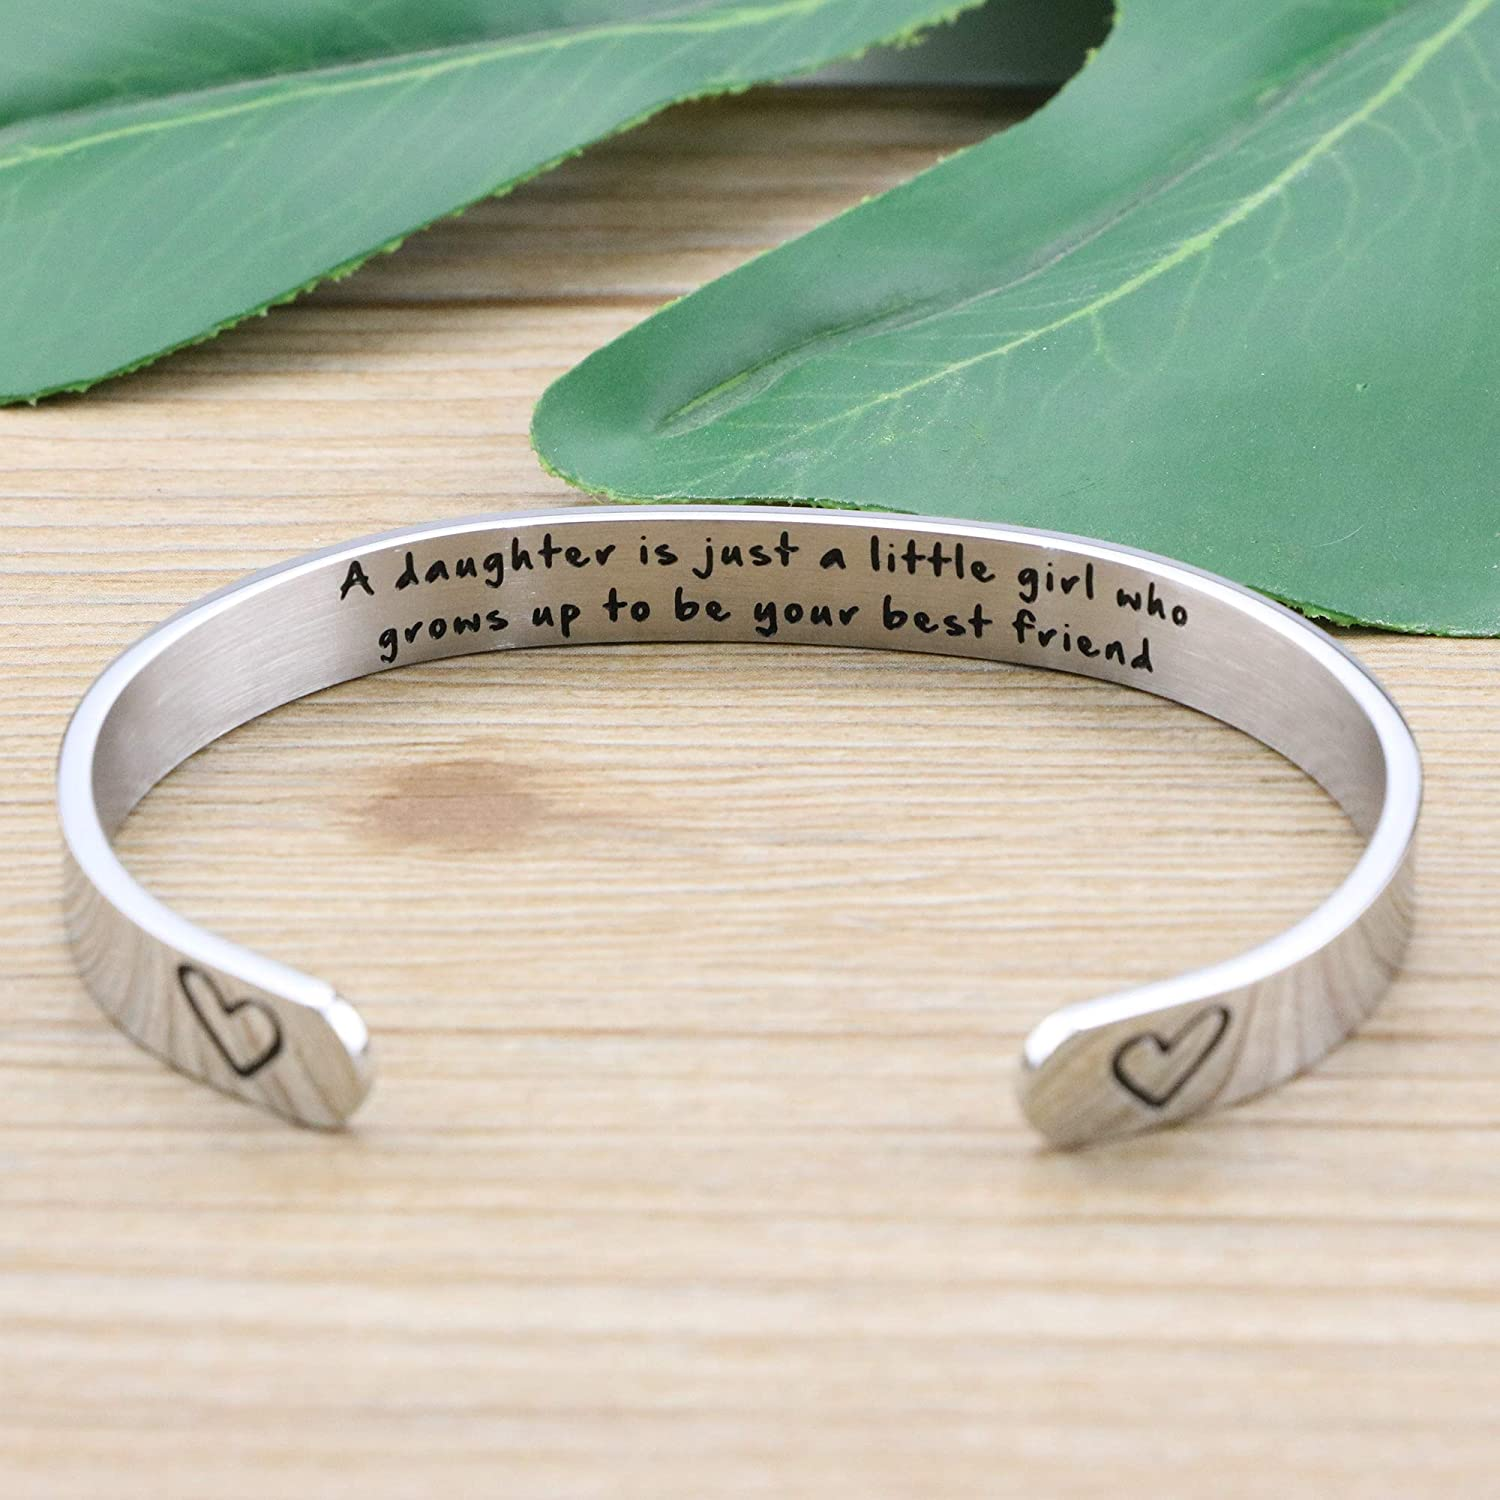 Mantra bracelet Daughter gift Mother/'s Day gift Engraved message cuff bracelet Mother and Daughter bracelet Leaving home Fresher gift